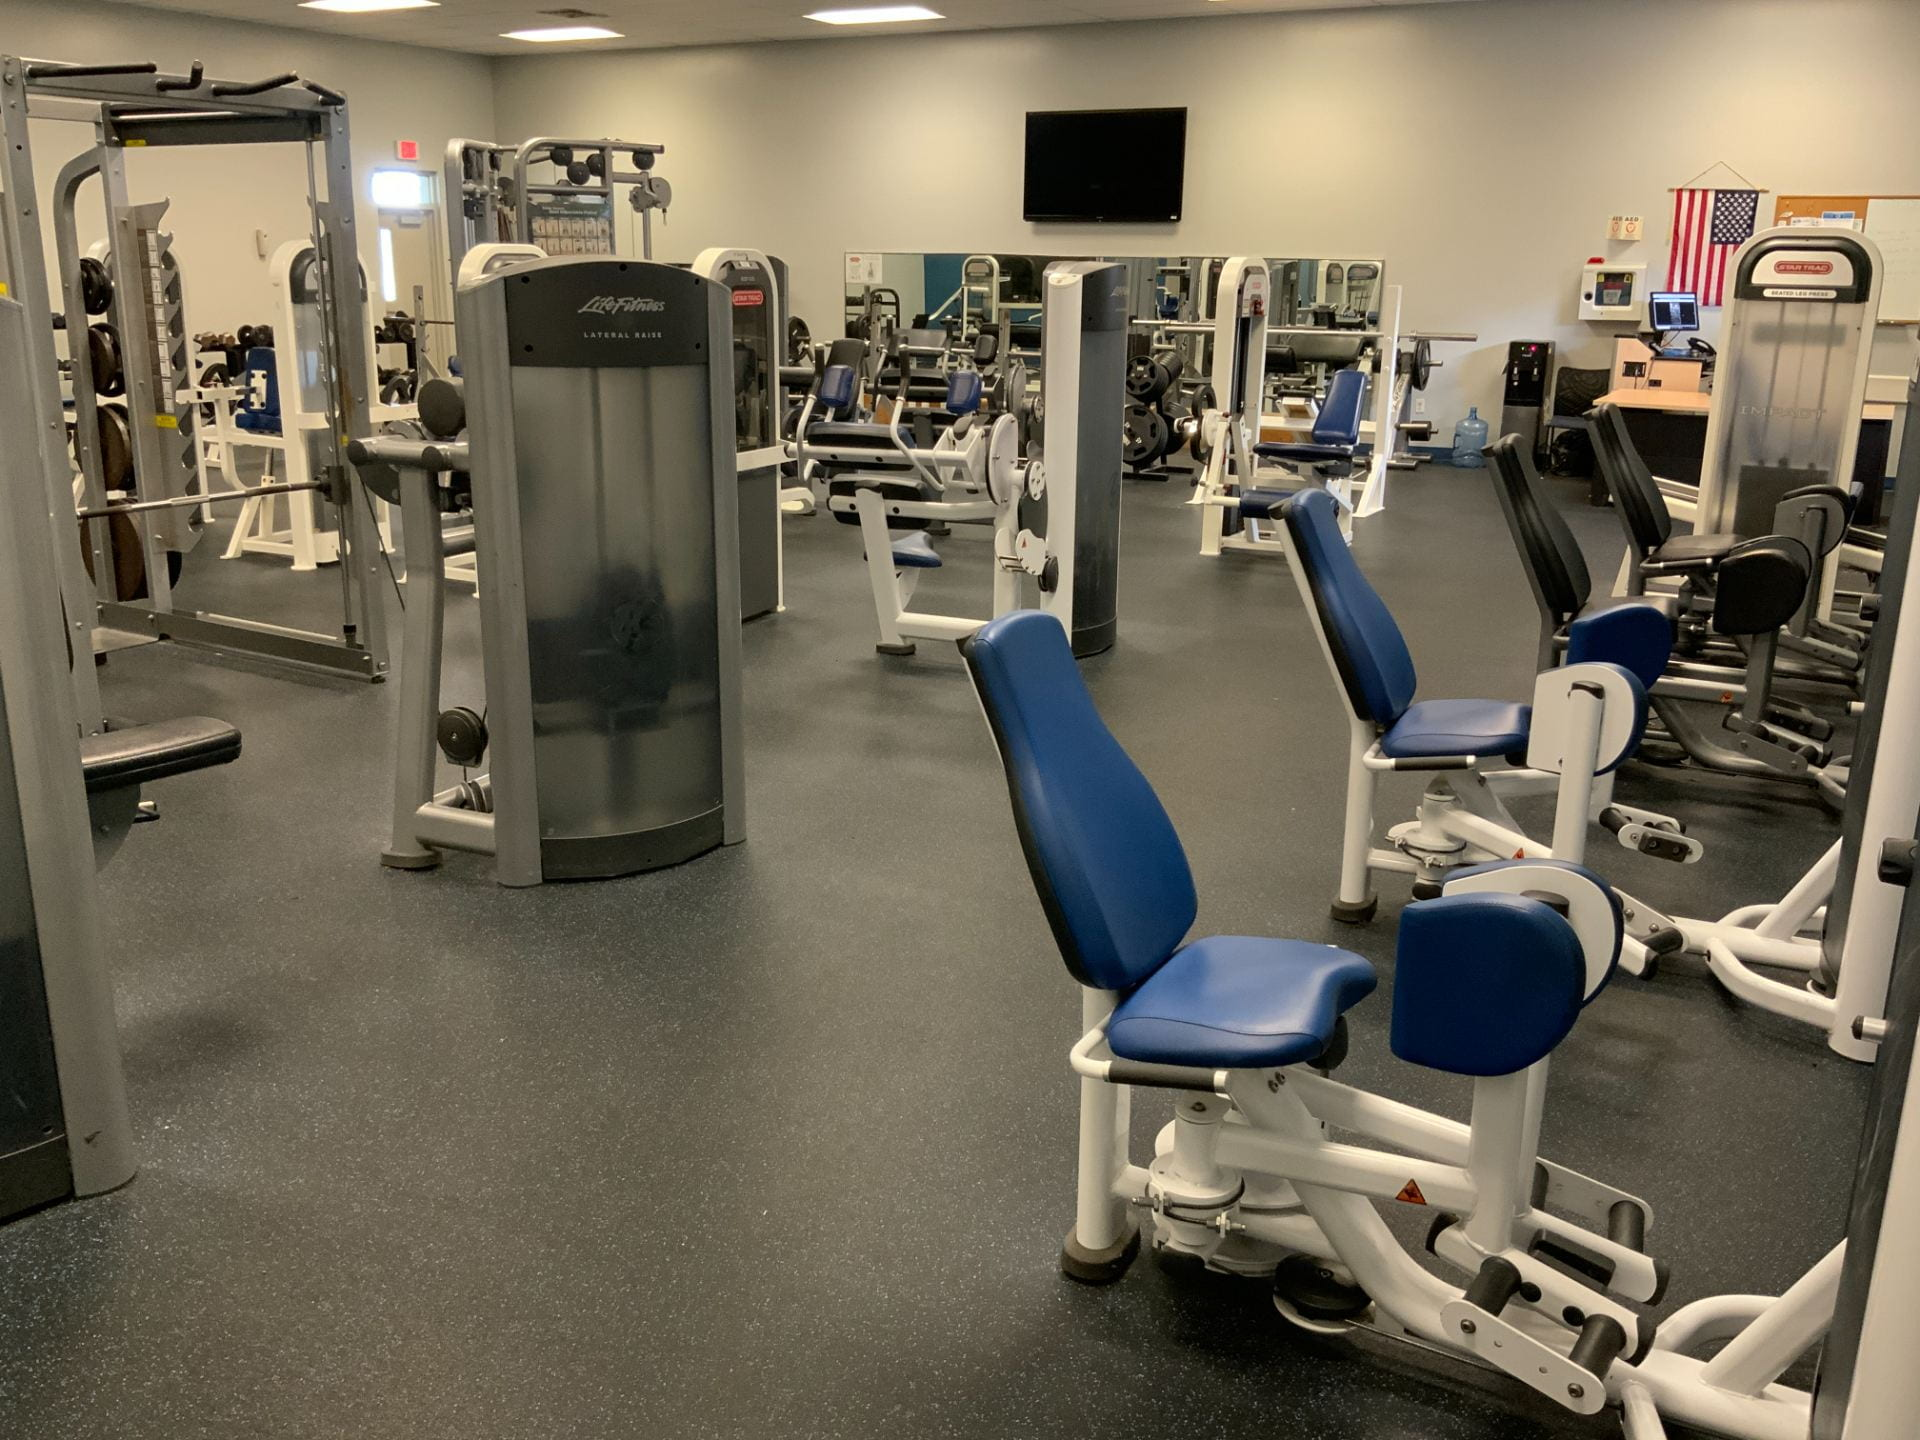 General view of north campus weight room.